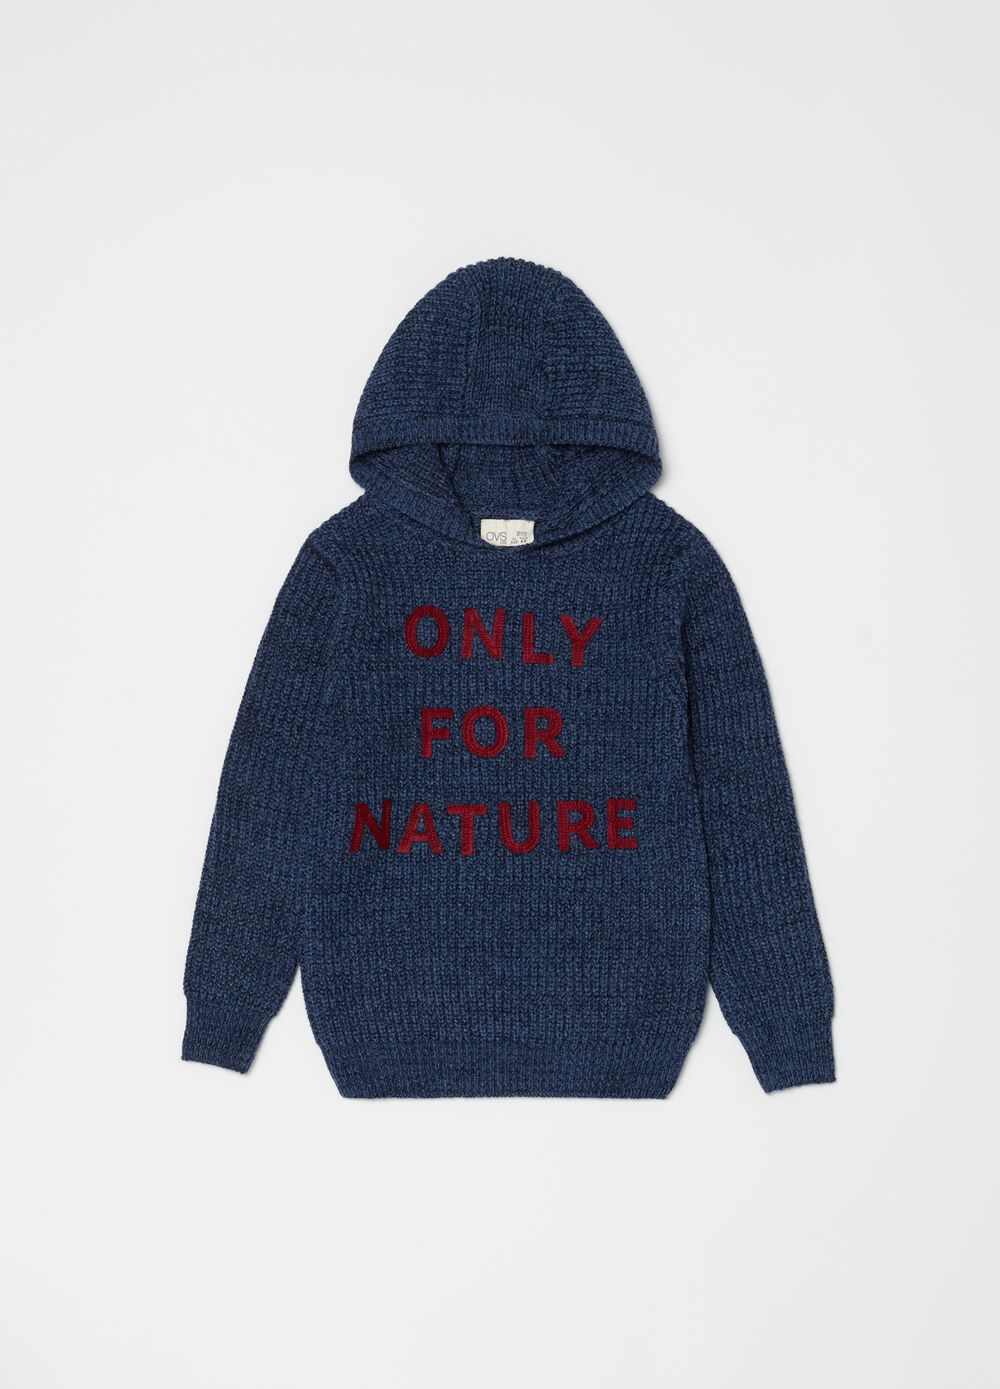 Knitted sweatshirt with embroidery and hood